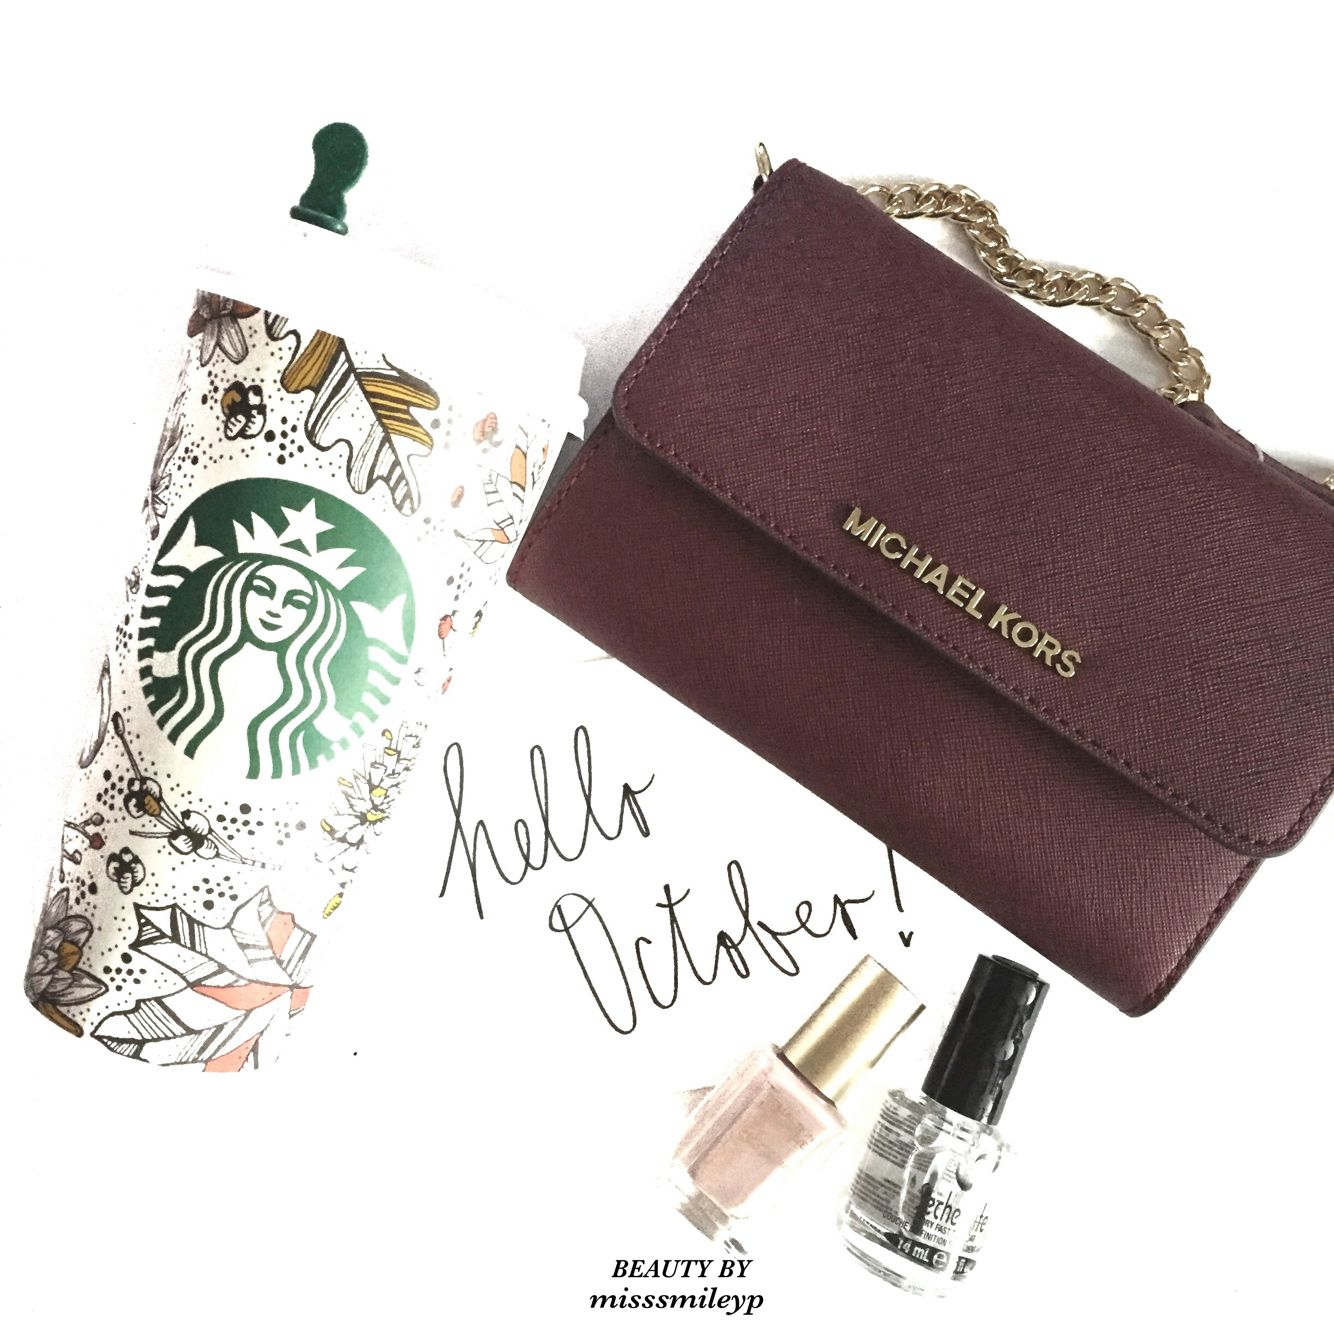 ✨Greeting to October! I love this @michaelkors 3-way small purse, especially the color is perfect for Fall❤️ And the @Starbucks cup is so festive Hope everyone has a good start of October! #michaelkors #starbucks #fall #october